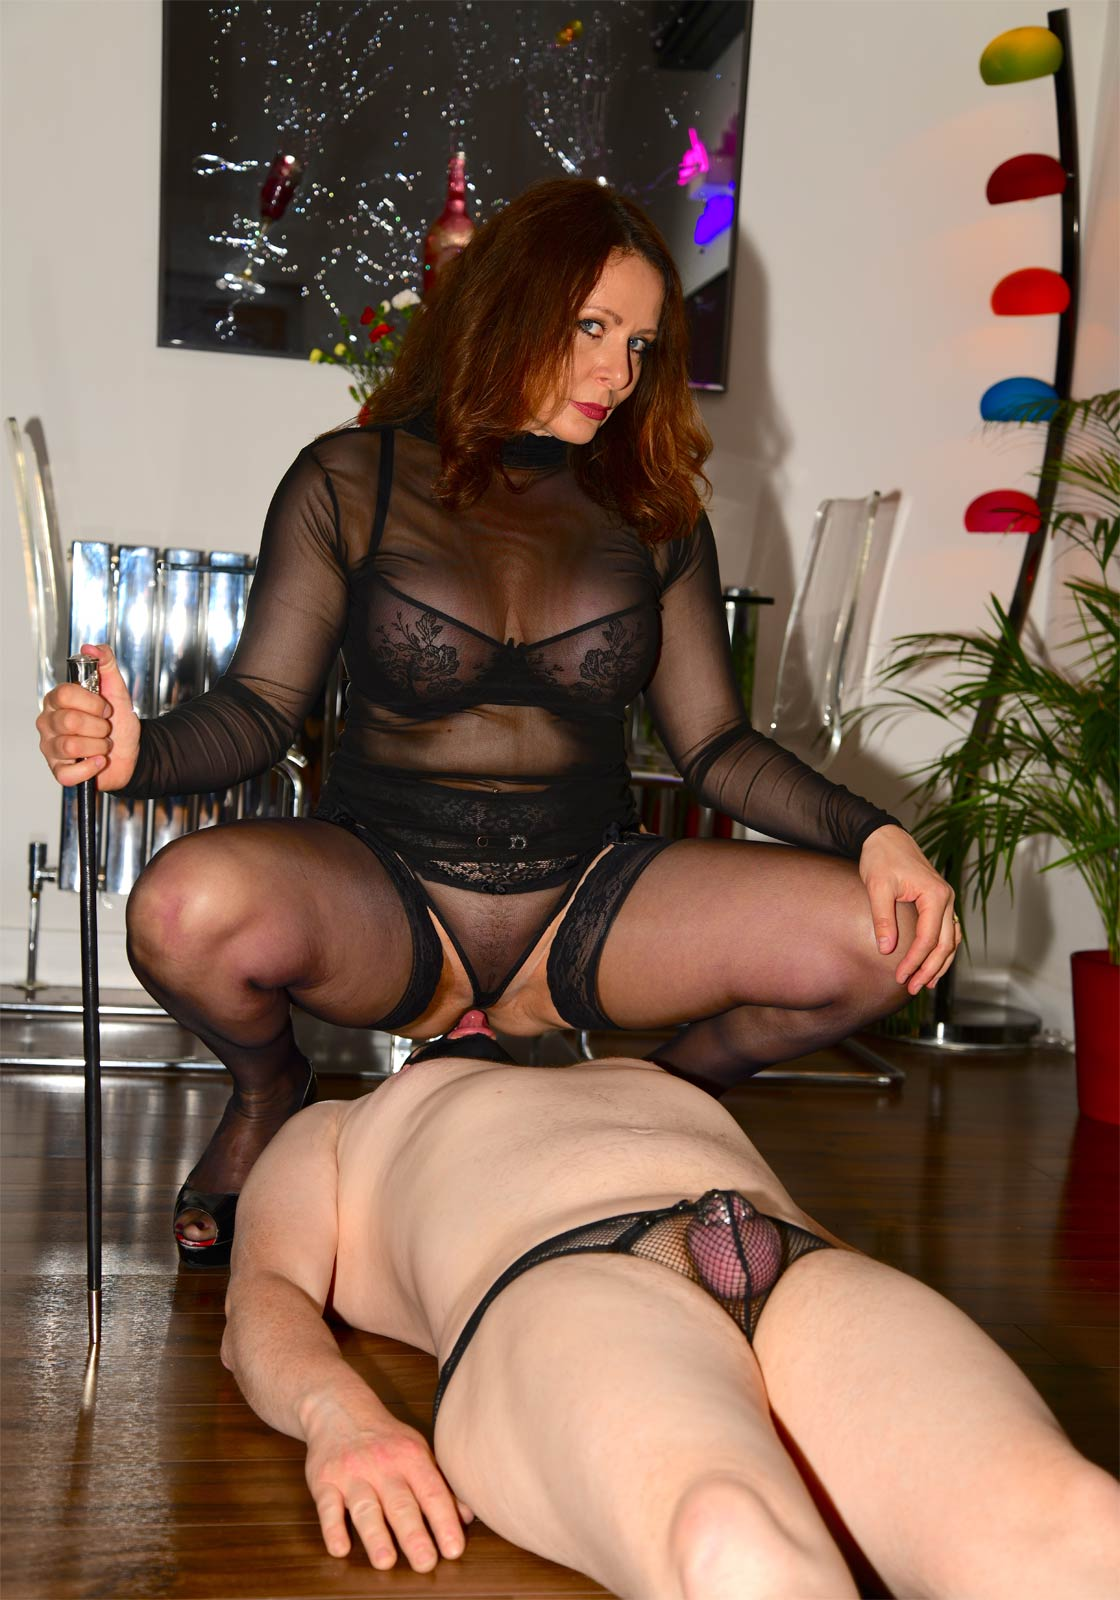 Want to be feminised? Book a session with Mistress Carly